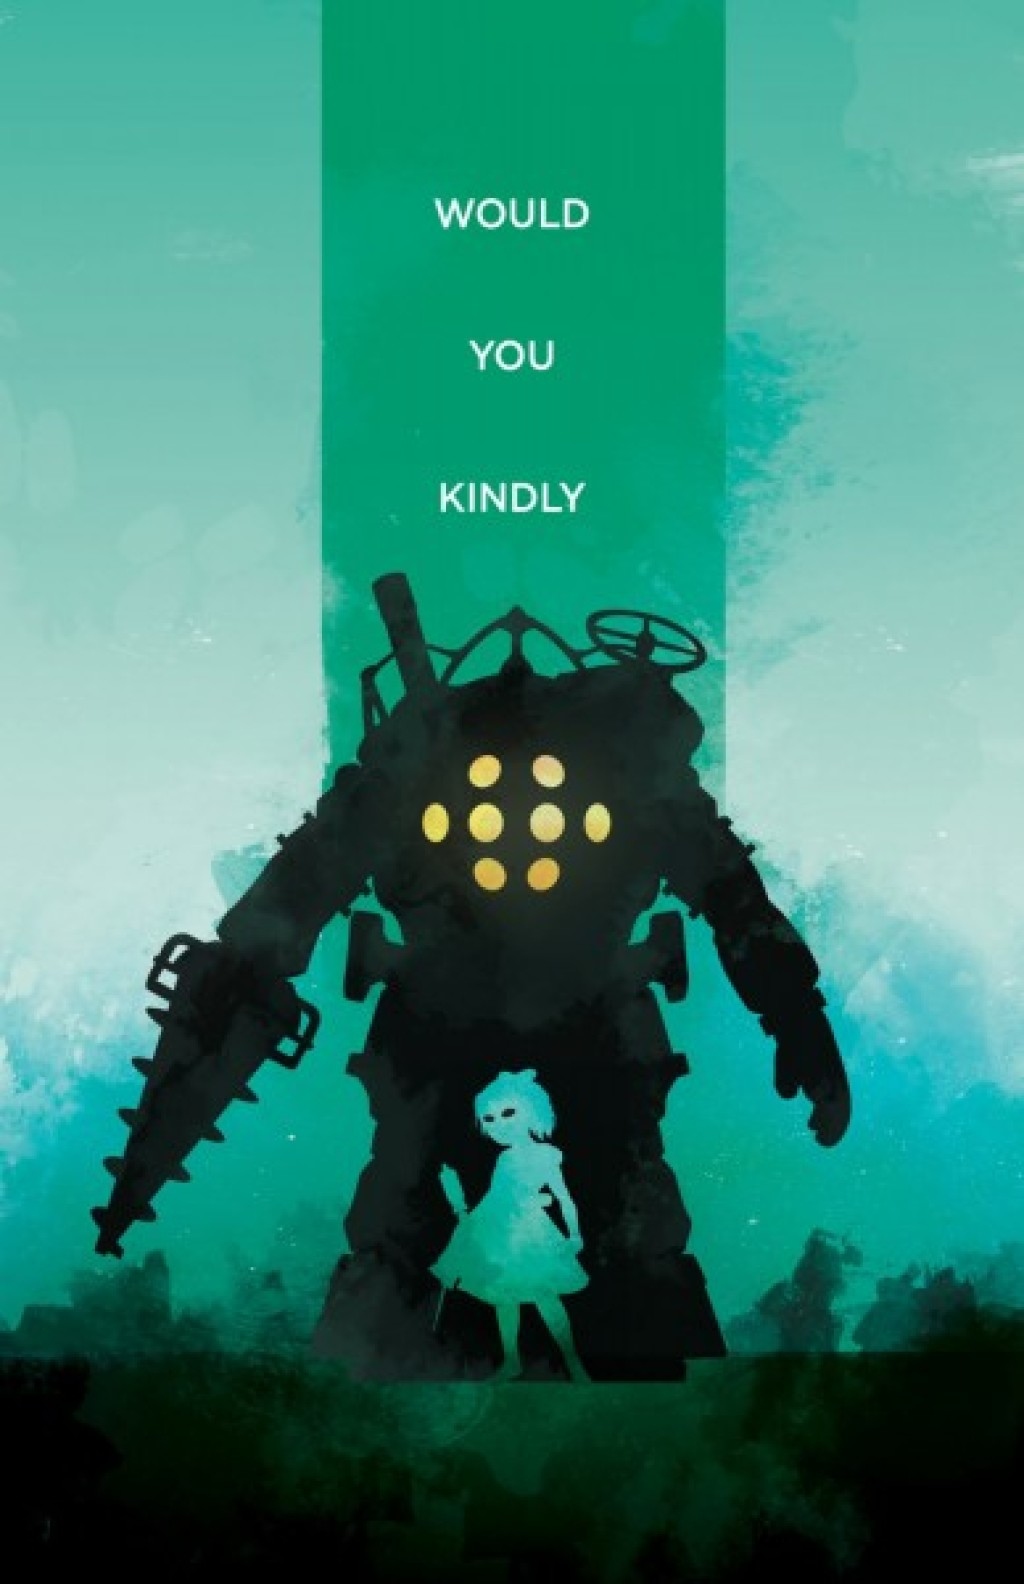 bioshock-video-game-poster-by-dylan-west